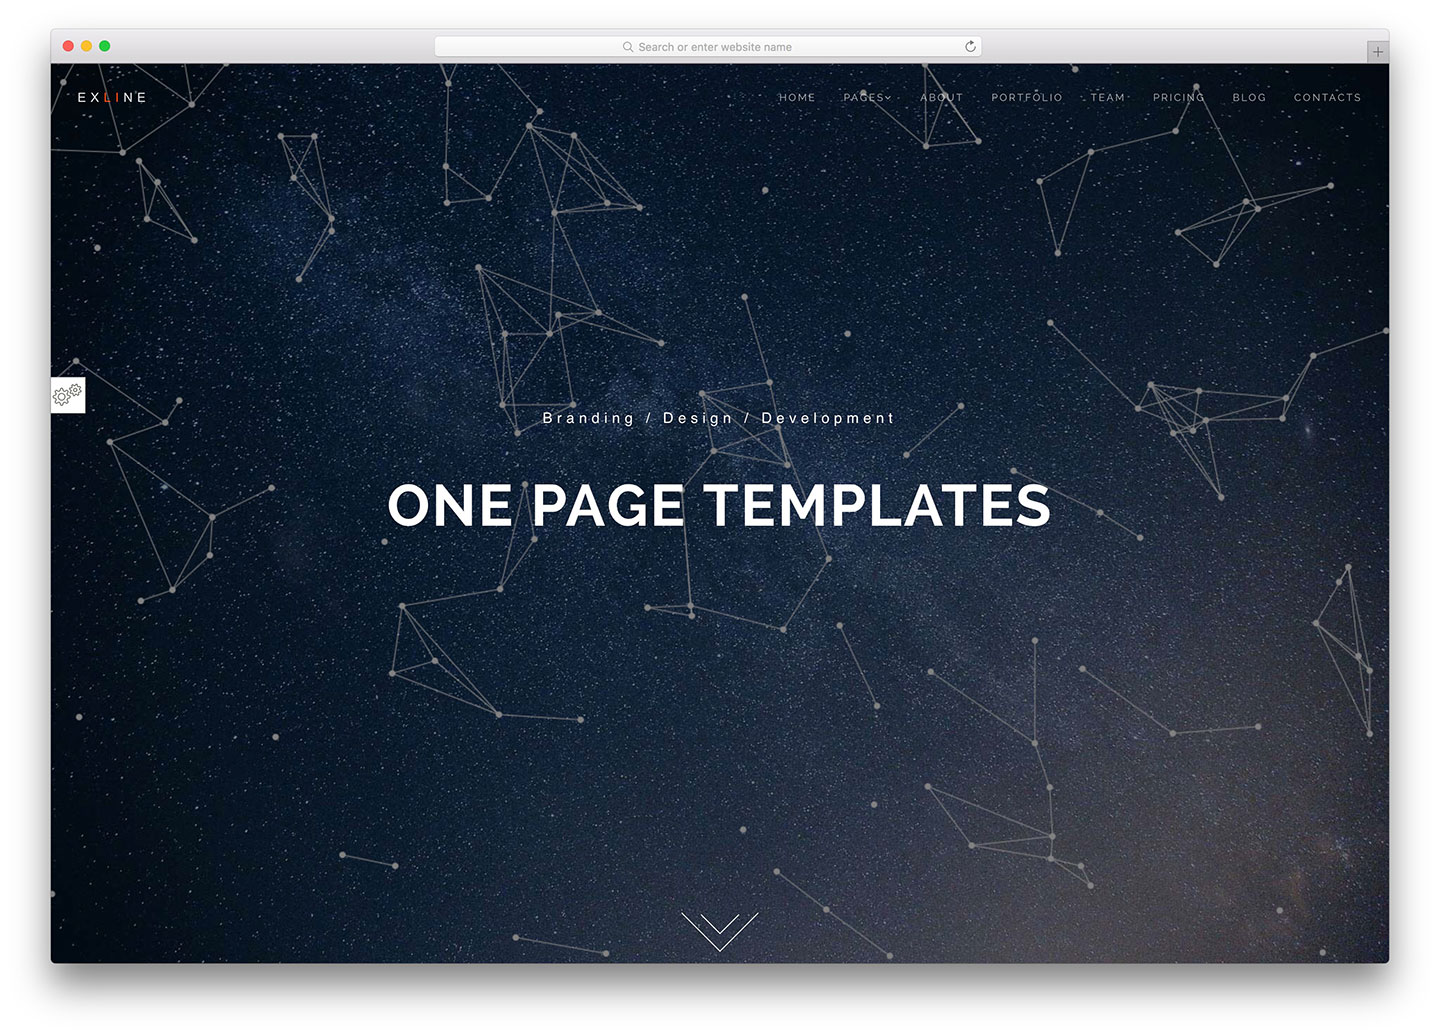 18 Best HTML5 One Page Website Templates 2017 - Colorlib